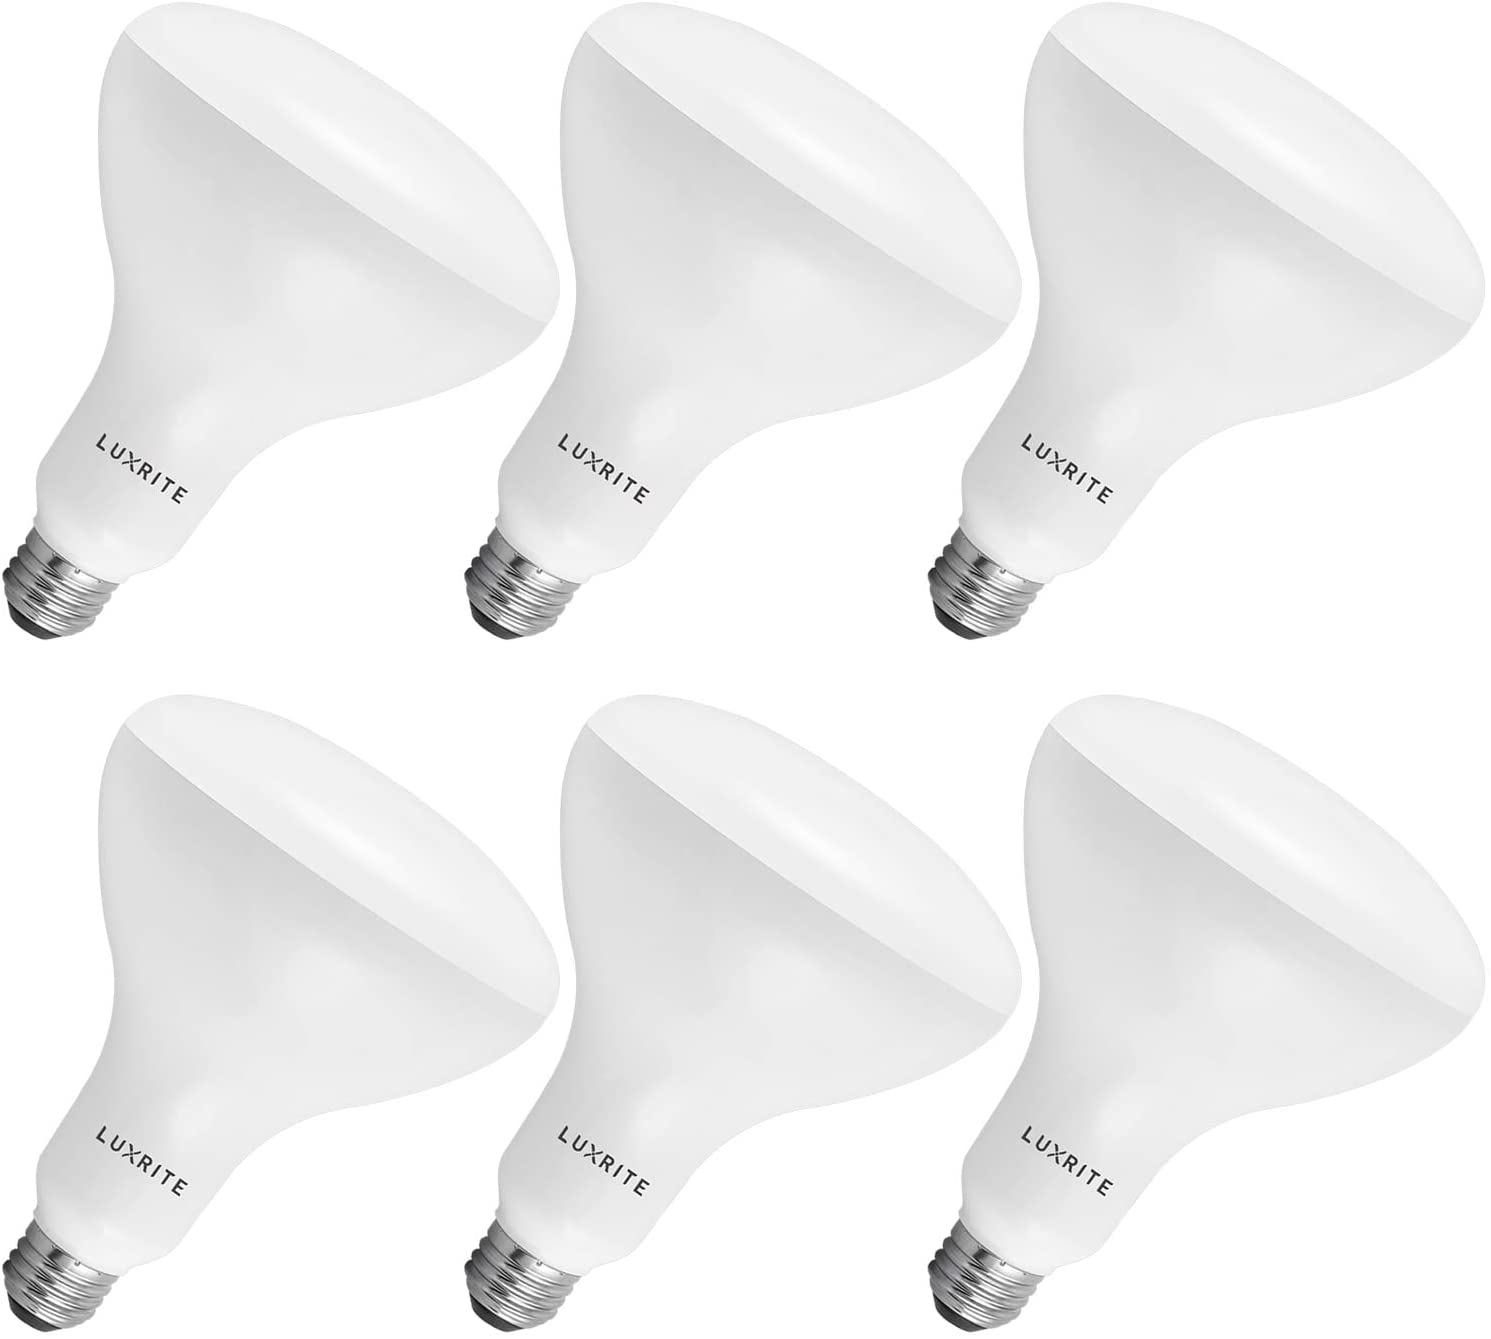 Luxrite BR40 LED Light Bulbs, 85W Equivalent, 6500K Daylight White, Dimmable, 1100 Lumen, LED Flood Light Bulb, 14W, E26 Medium Base, Indoor/Outdoor - Perfect for Office and Recessed Lighting (6 Pack)